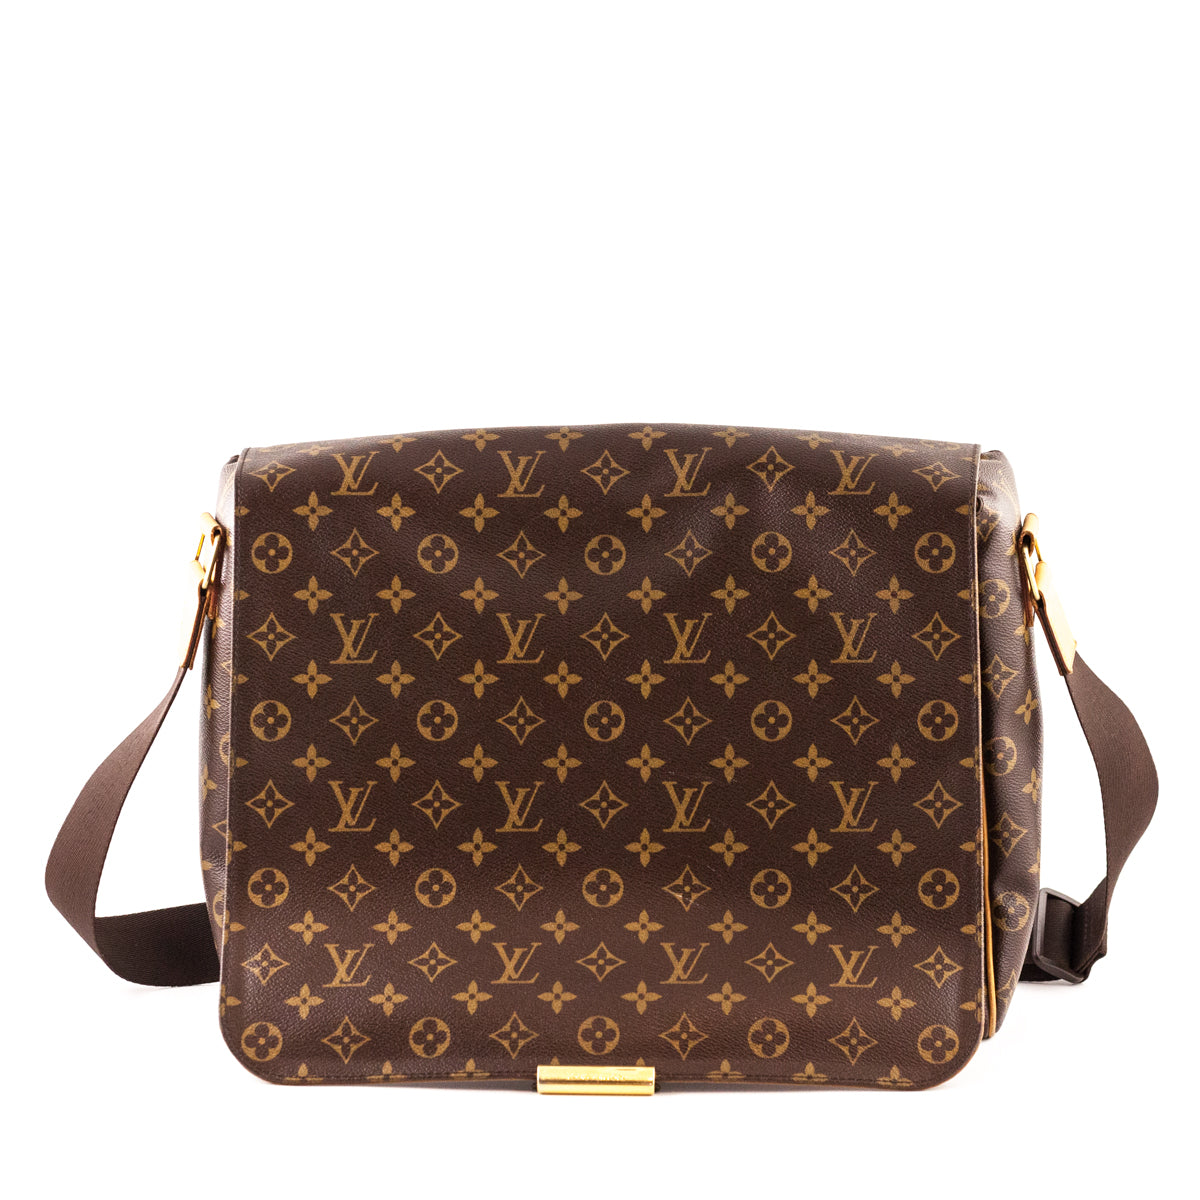 99c9b3cc90b6 Louis Vuitton Monogram Men s Abbesses Messenger - LOVE that BAG - Preowned  Authentic Designer Handbags ...